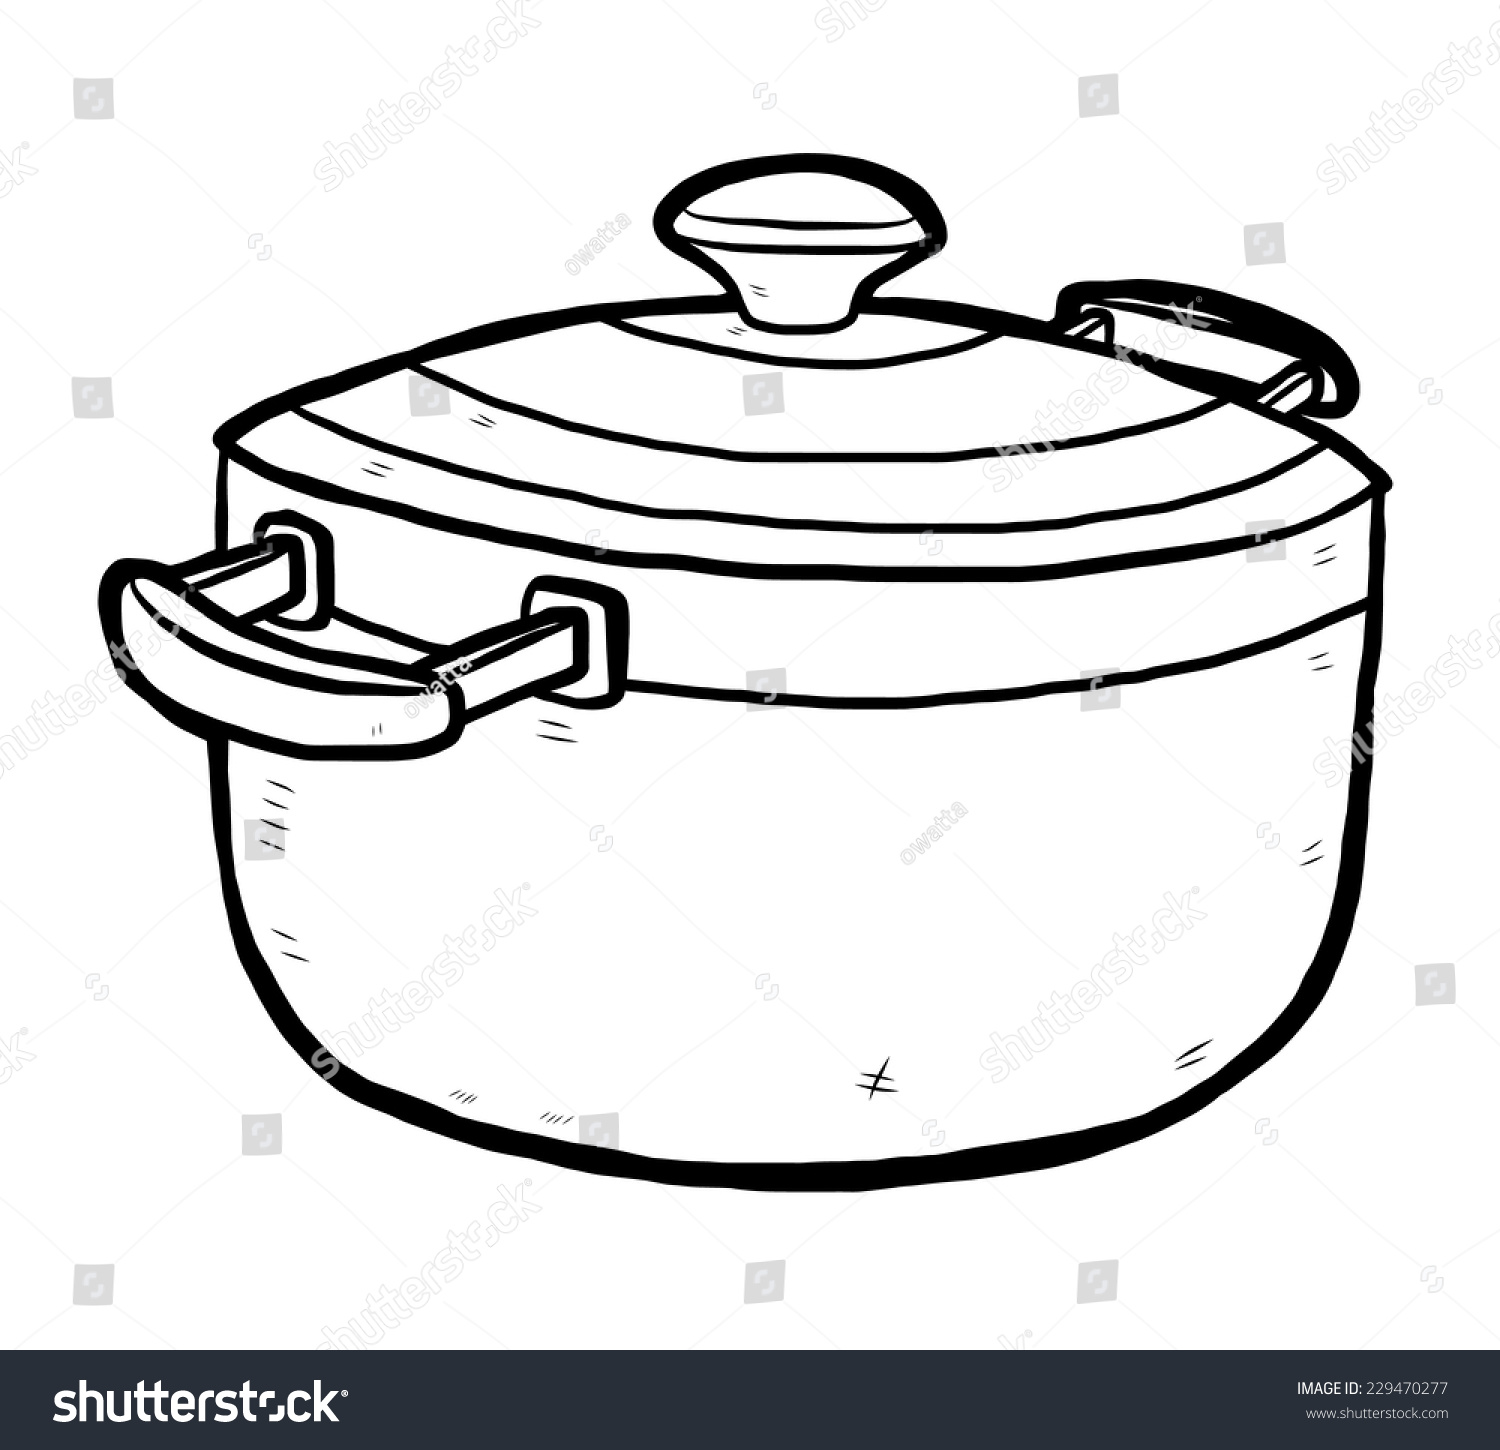 kitchen pot cartoon vector illustration black stock vector